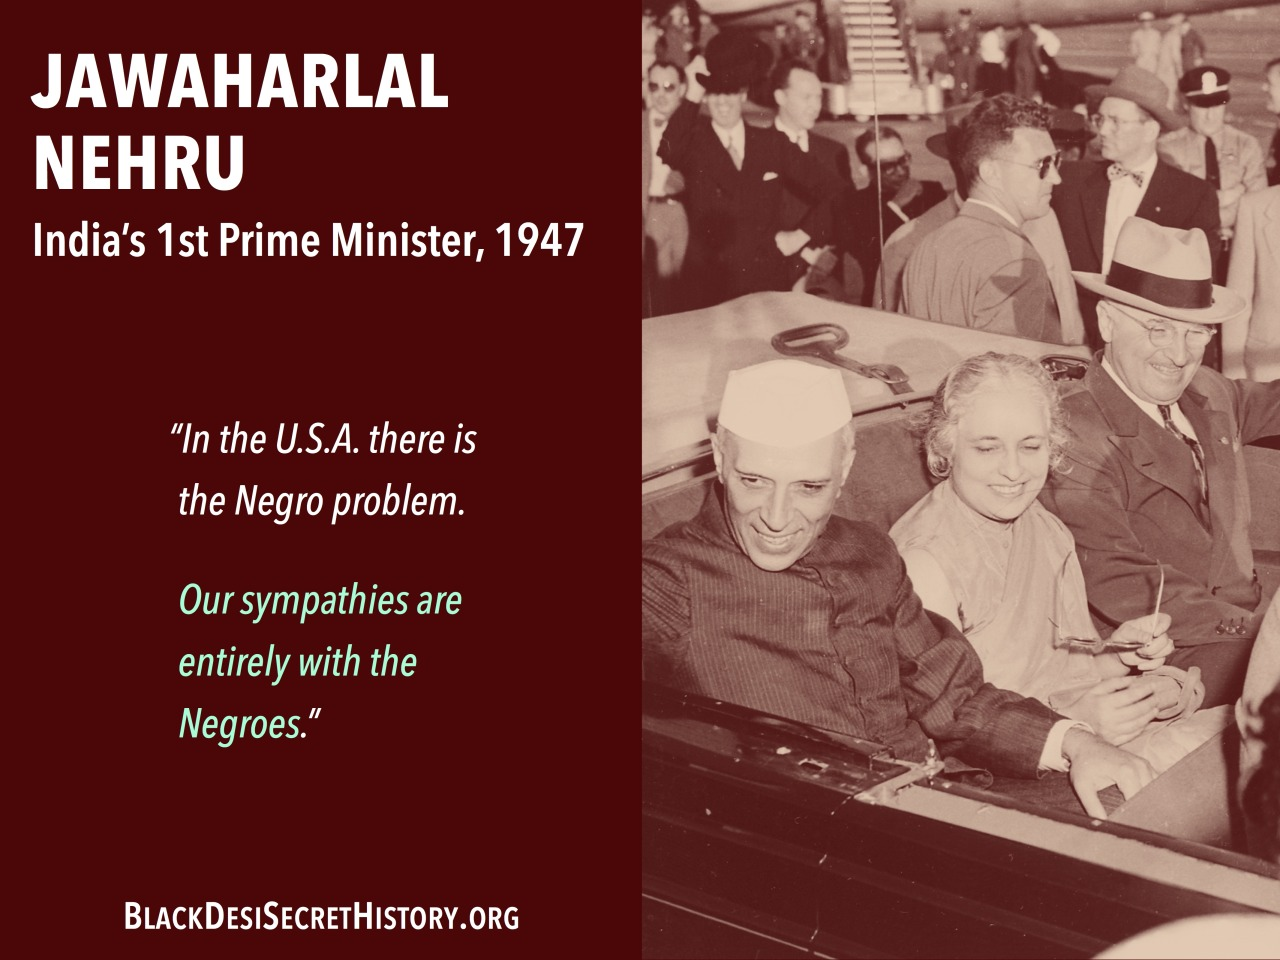 "JAWAHARLAL NEHRU, India's 1st Prime Minister, 1947: ""In the U.S.A. there is the Negro problem. Our sympathies are entirely with the Negroes."""